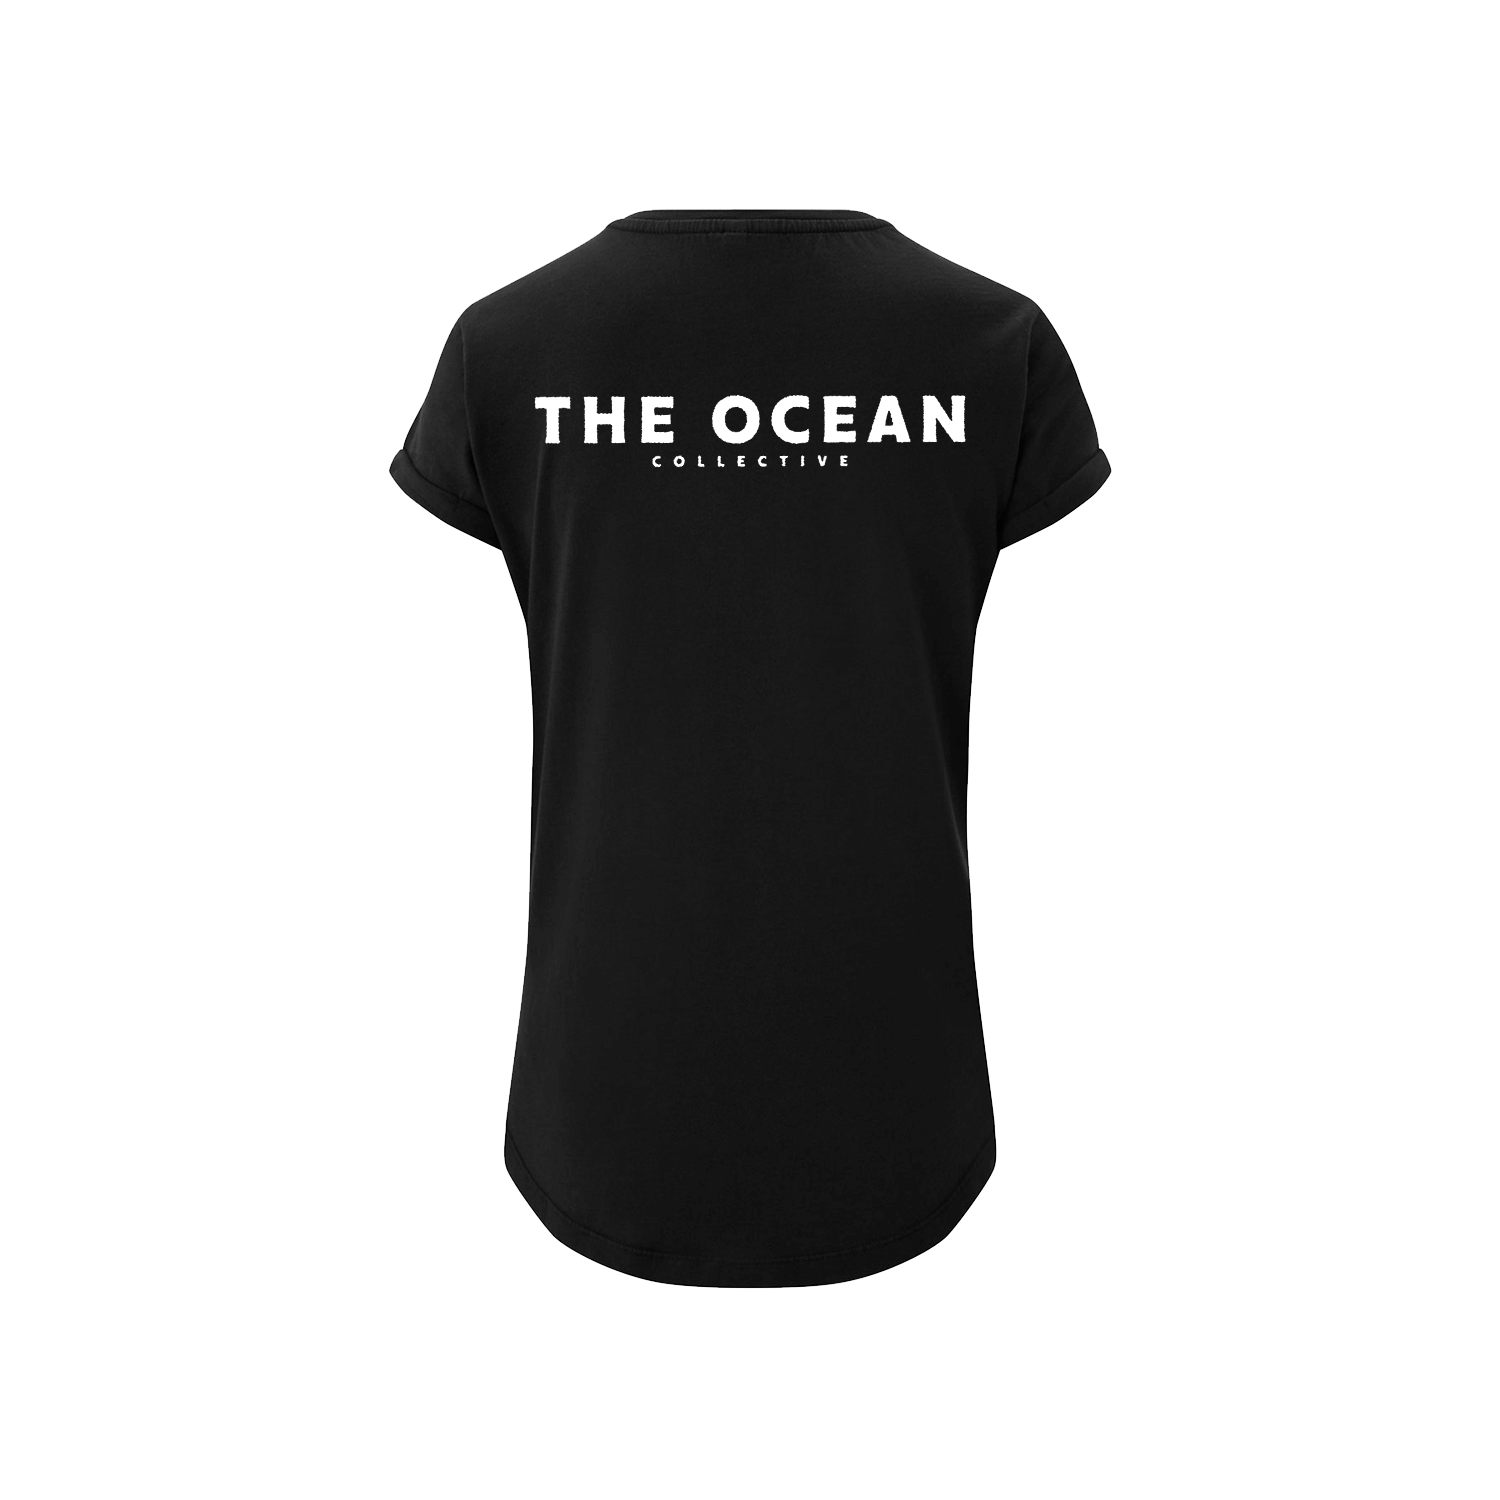 THE OCEAN // PHANEROZOIC II - WOMEN'S COLLISION BLACK T-SHIRT - Wild Thing Records